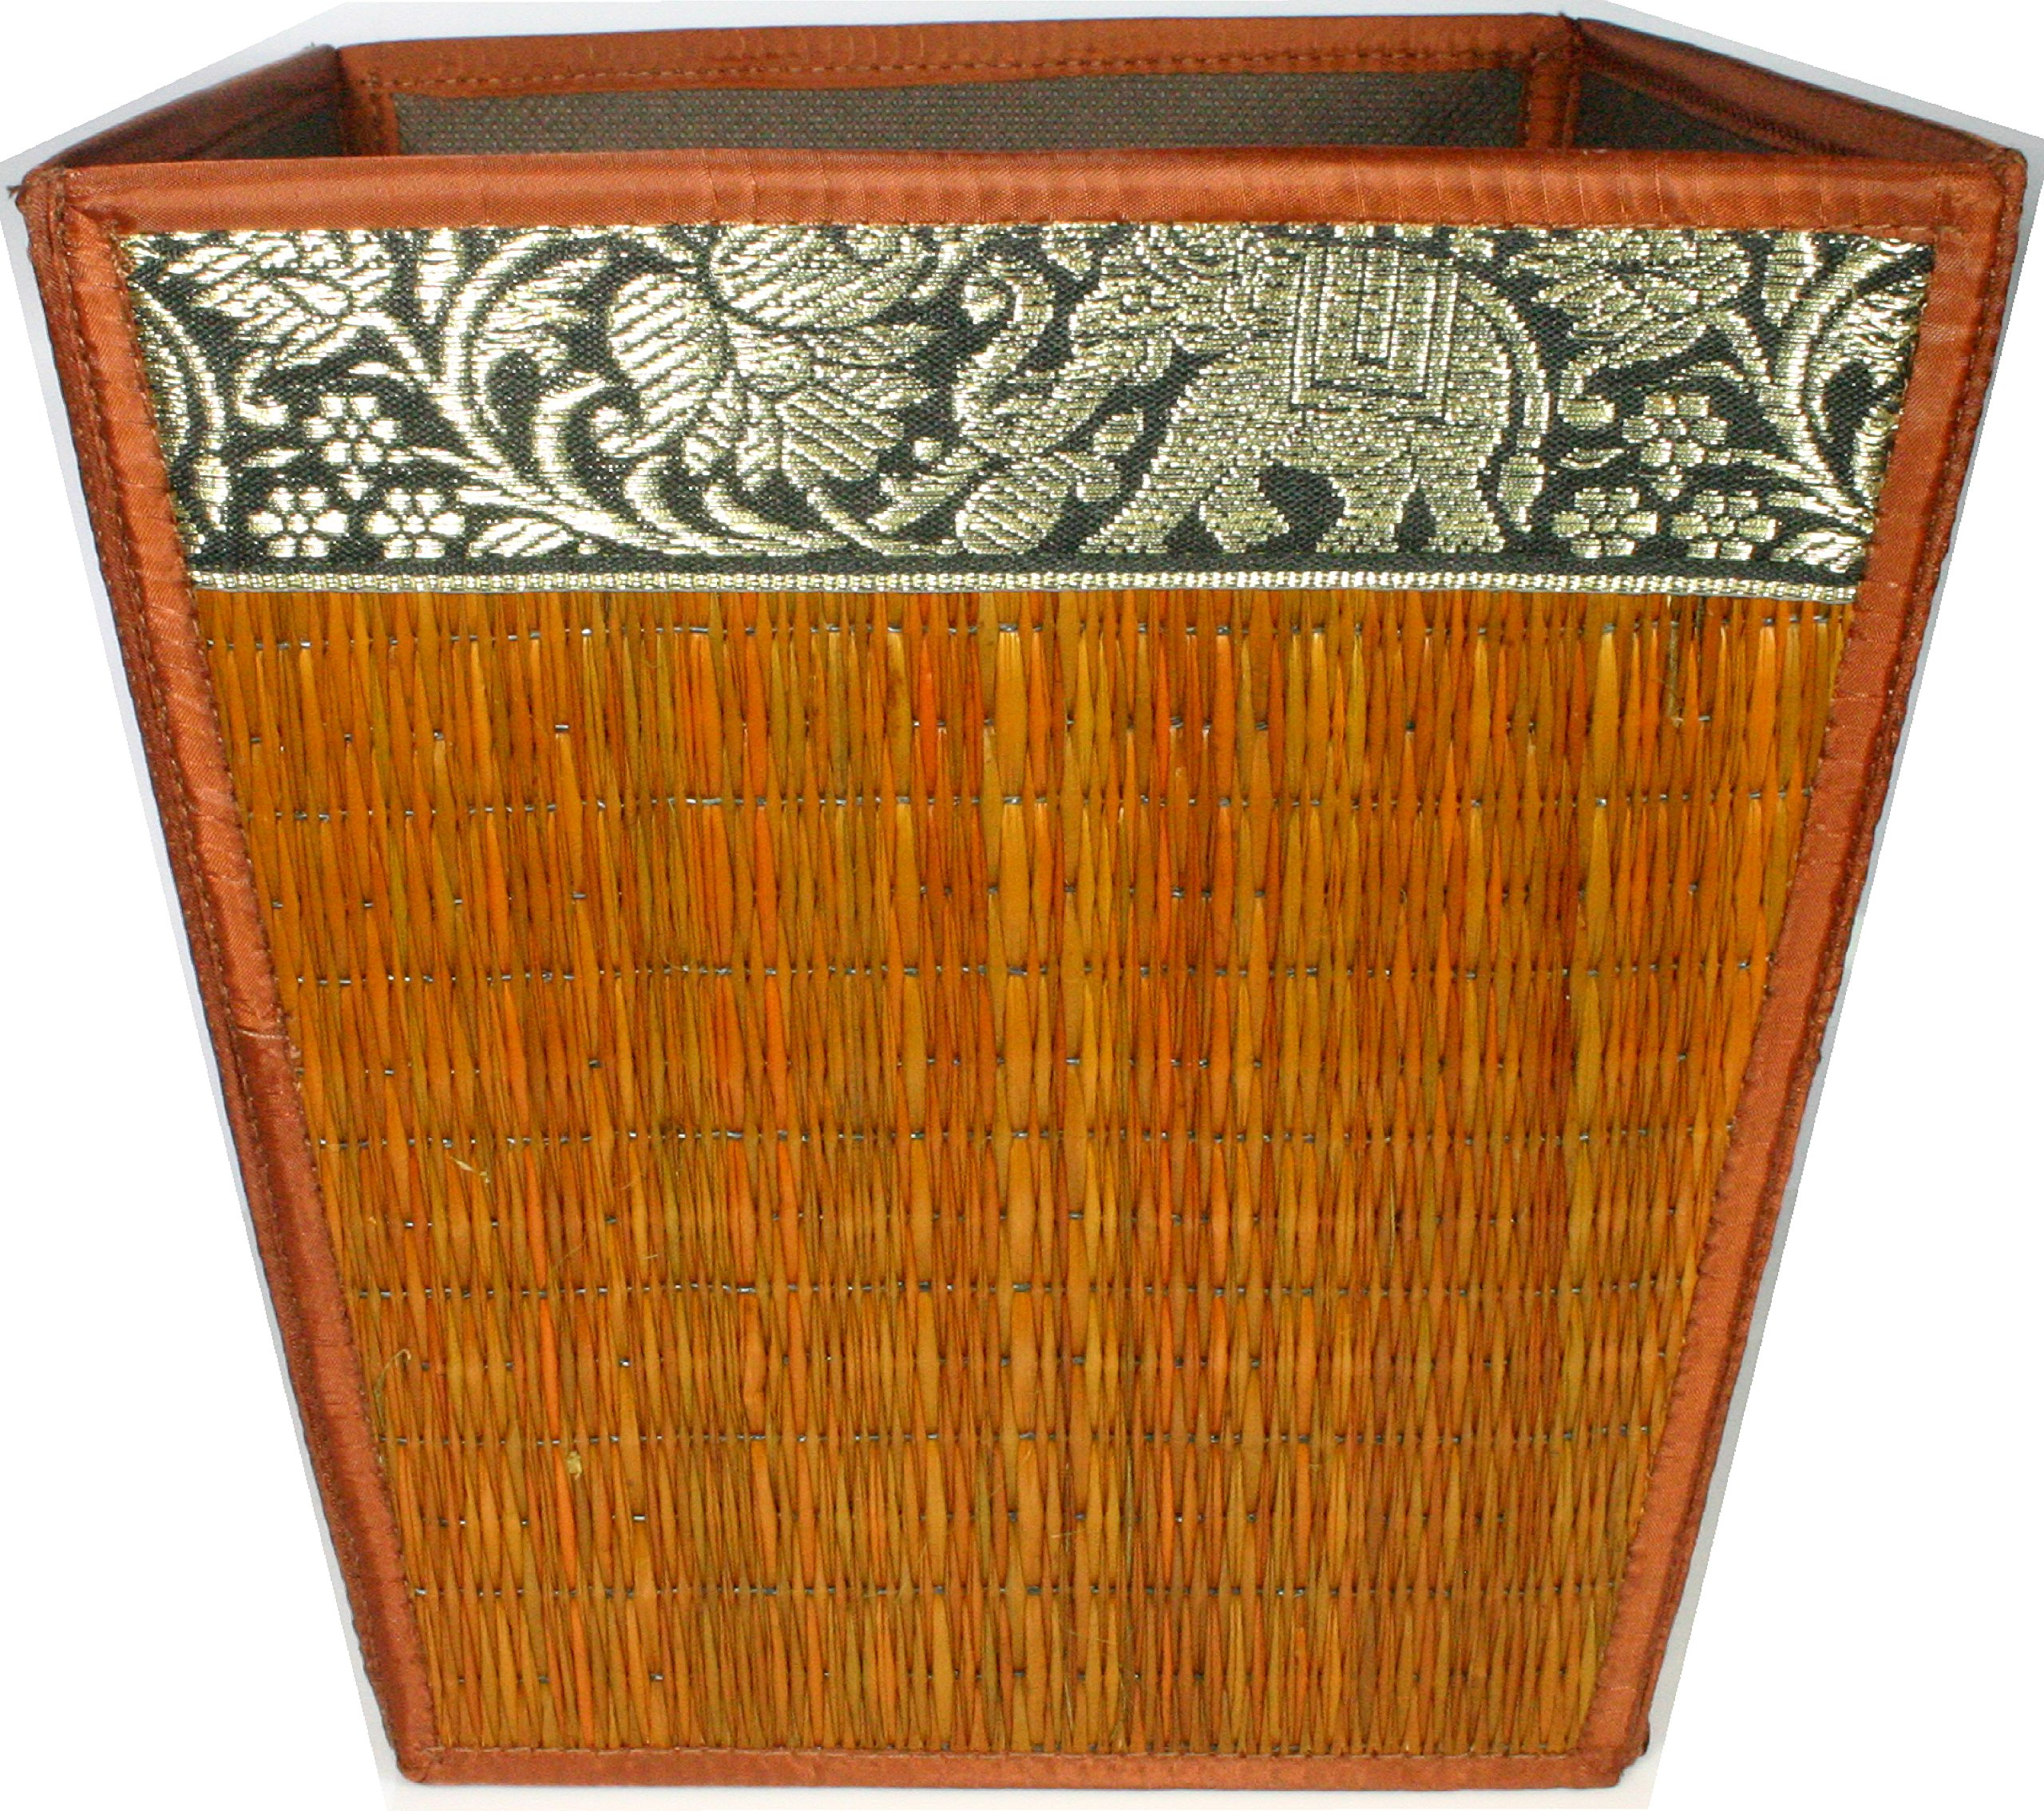 TOPMOST Handmade Thai Woven Straw Reed Wicker Square Waste Basket with Silk Elephant Design (Brown) by Topmost